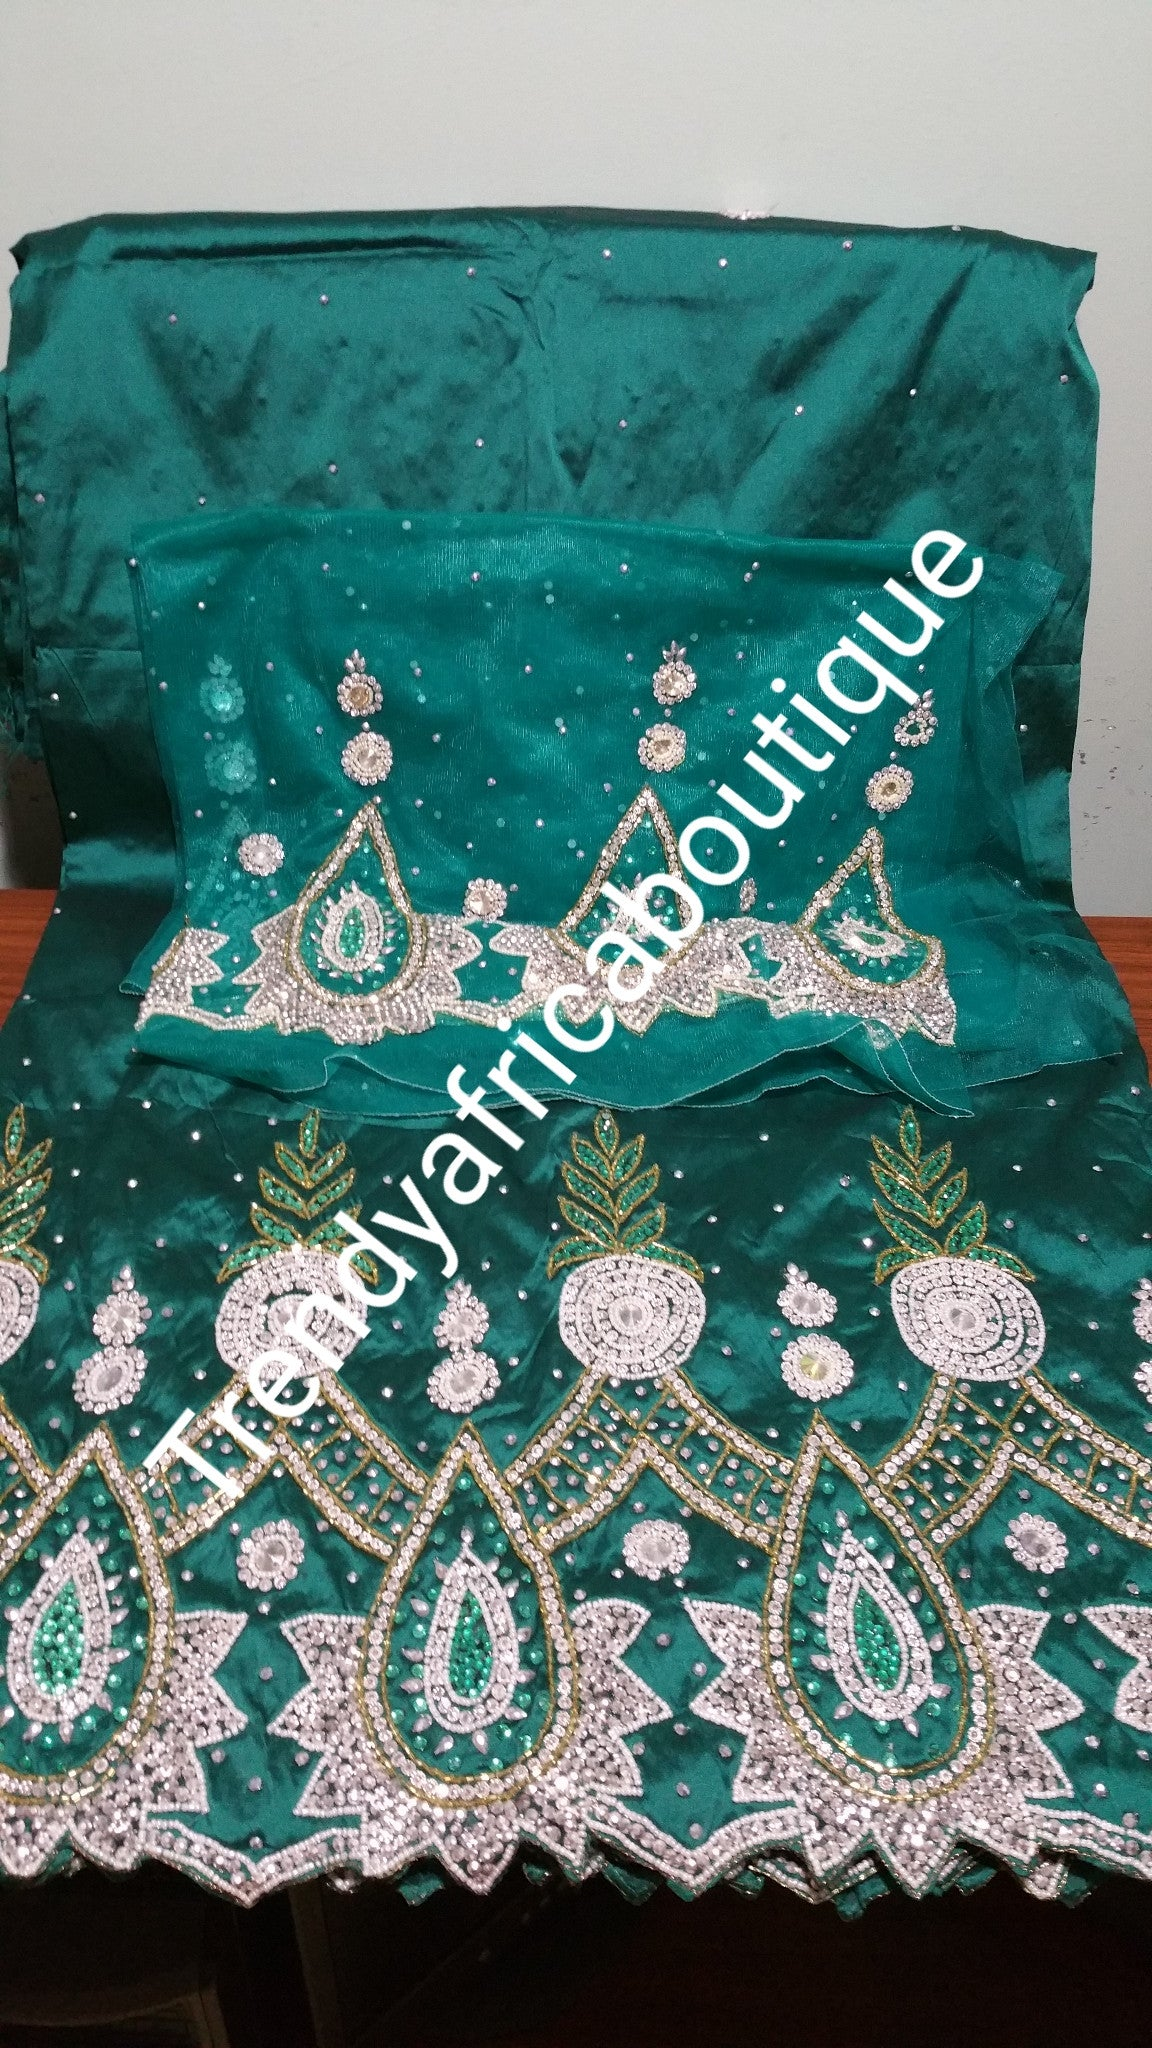 Special offer of Green VIP hand stoned all over George wrapper. Taffeta silk George in 5yds + 1.8yards matching blouse